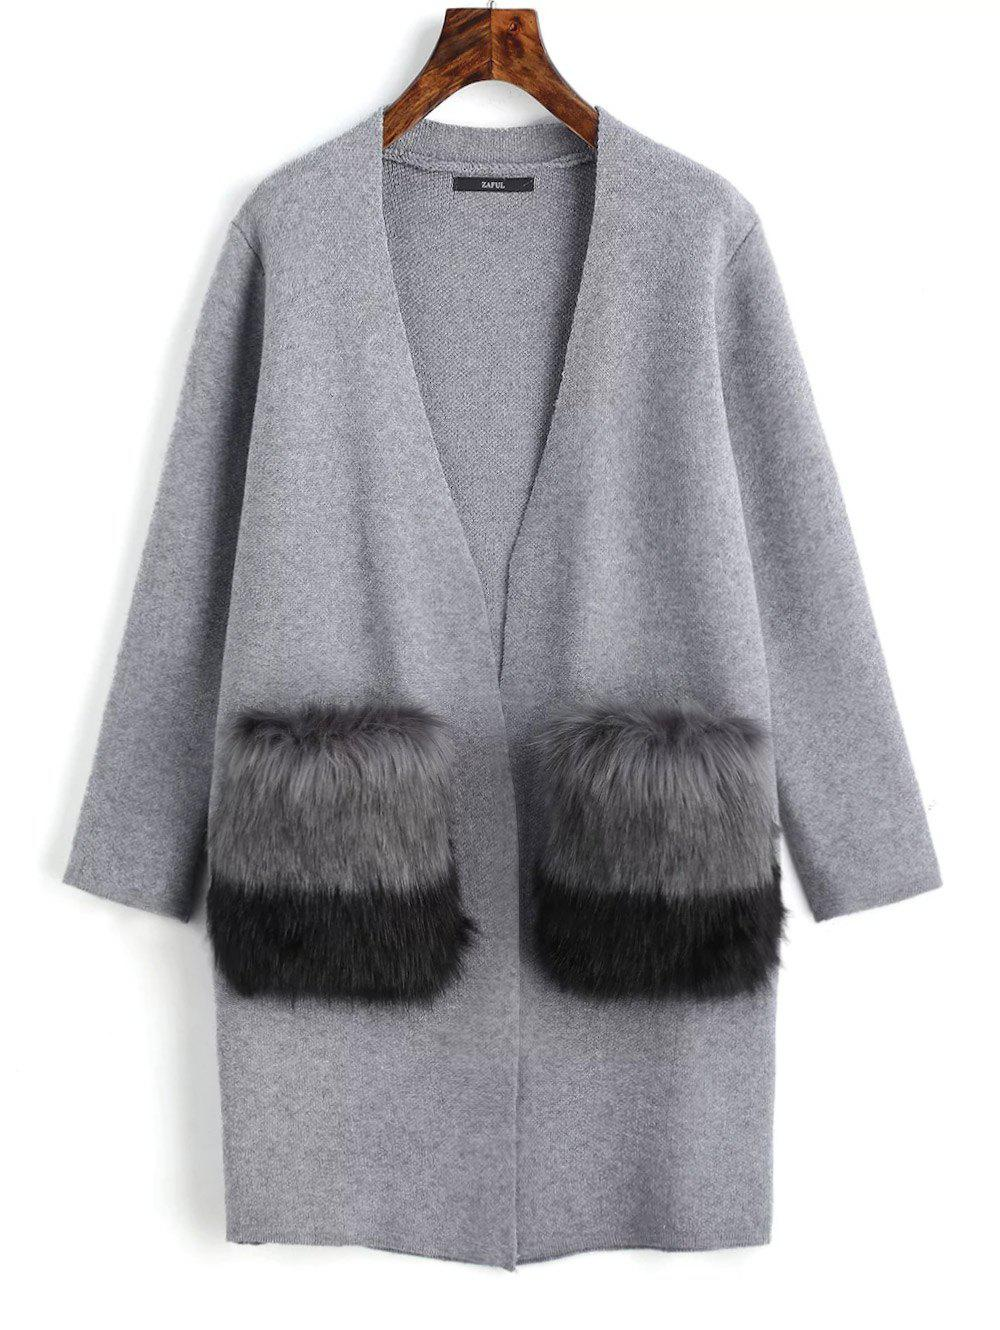 Faux Fur Pockets Open Front Cardigan 232939901